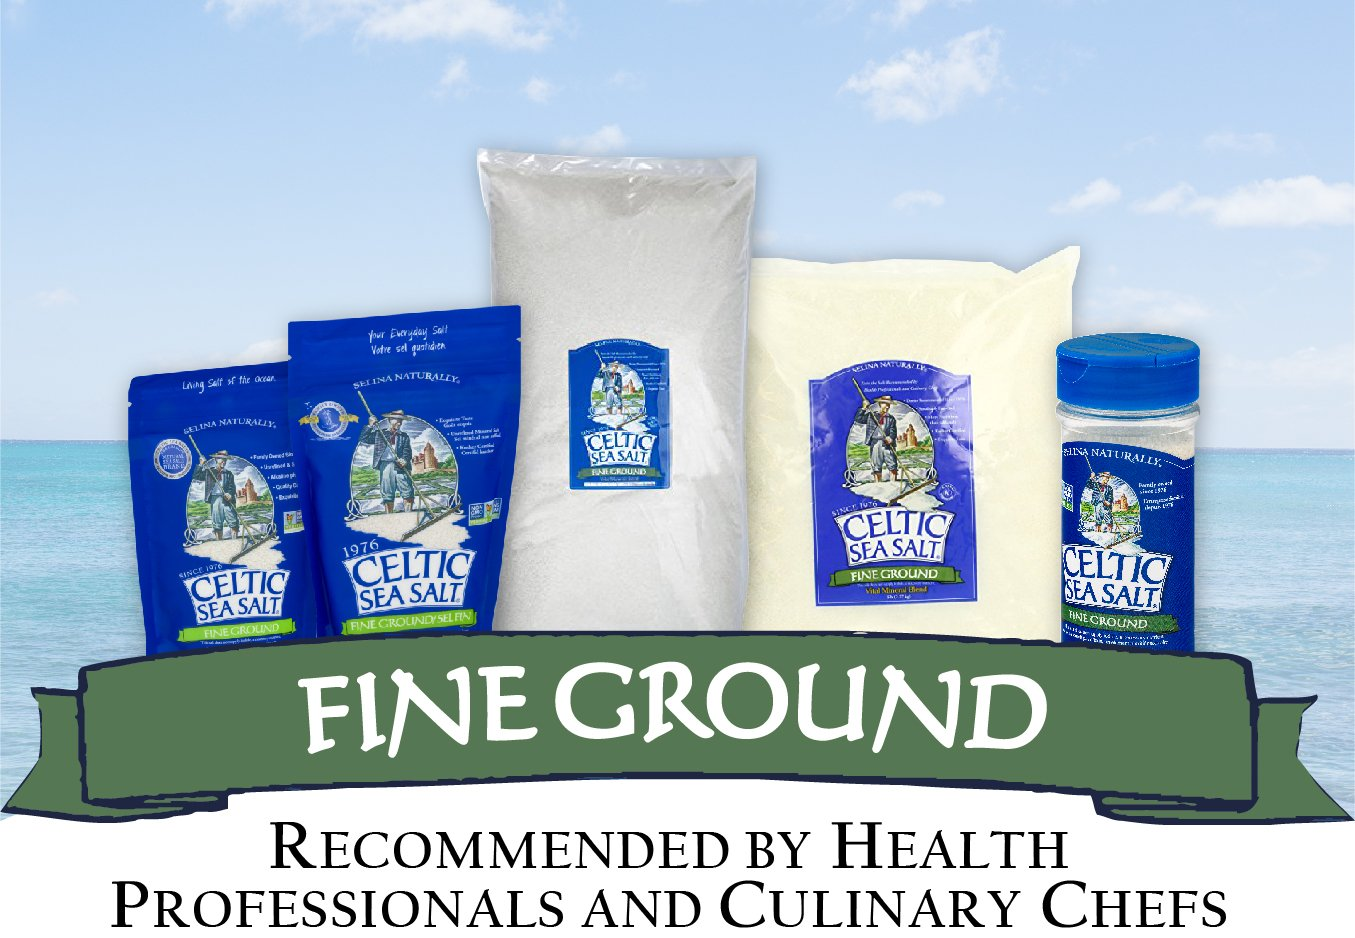 Fine Ground Celtic Sea Salt – (1) 16 Ounce Resealable Bag of Nutritious, Classic Sea Salt, Great for Cooking, Baking, Pickling, Finishing and More, Pantry-Friendly, Gluten-Free : Grocery & Gourmet Food